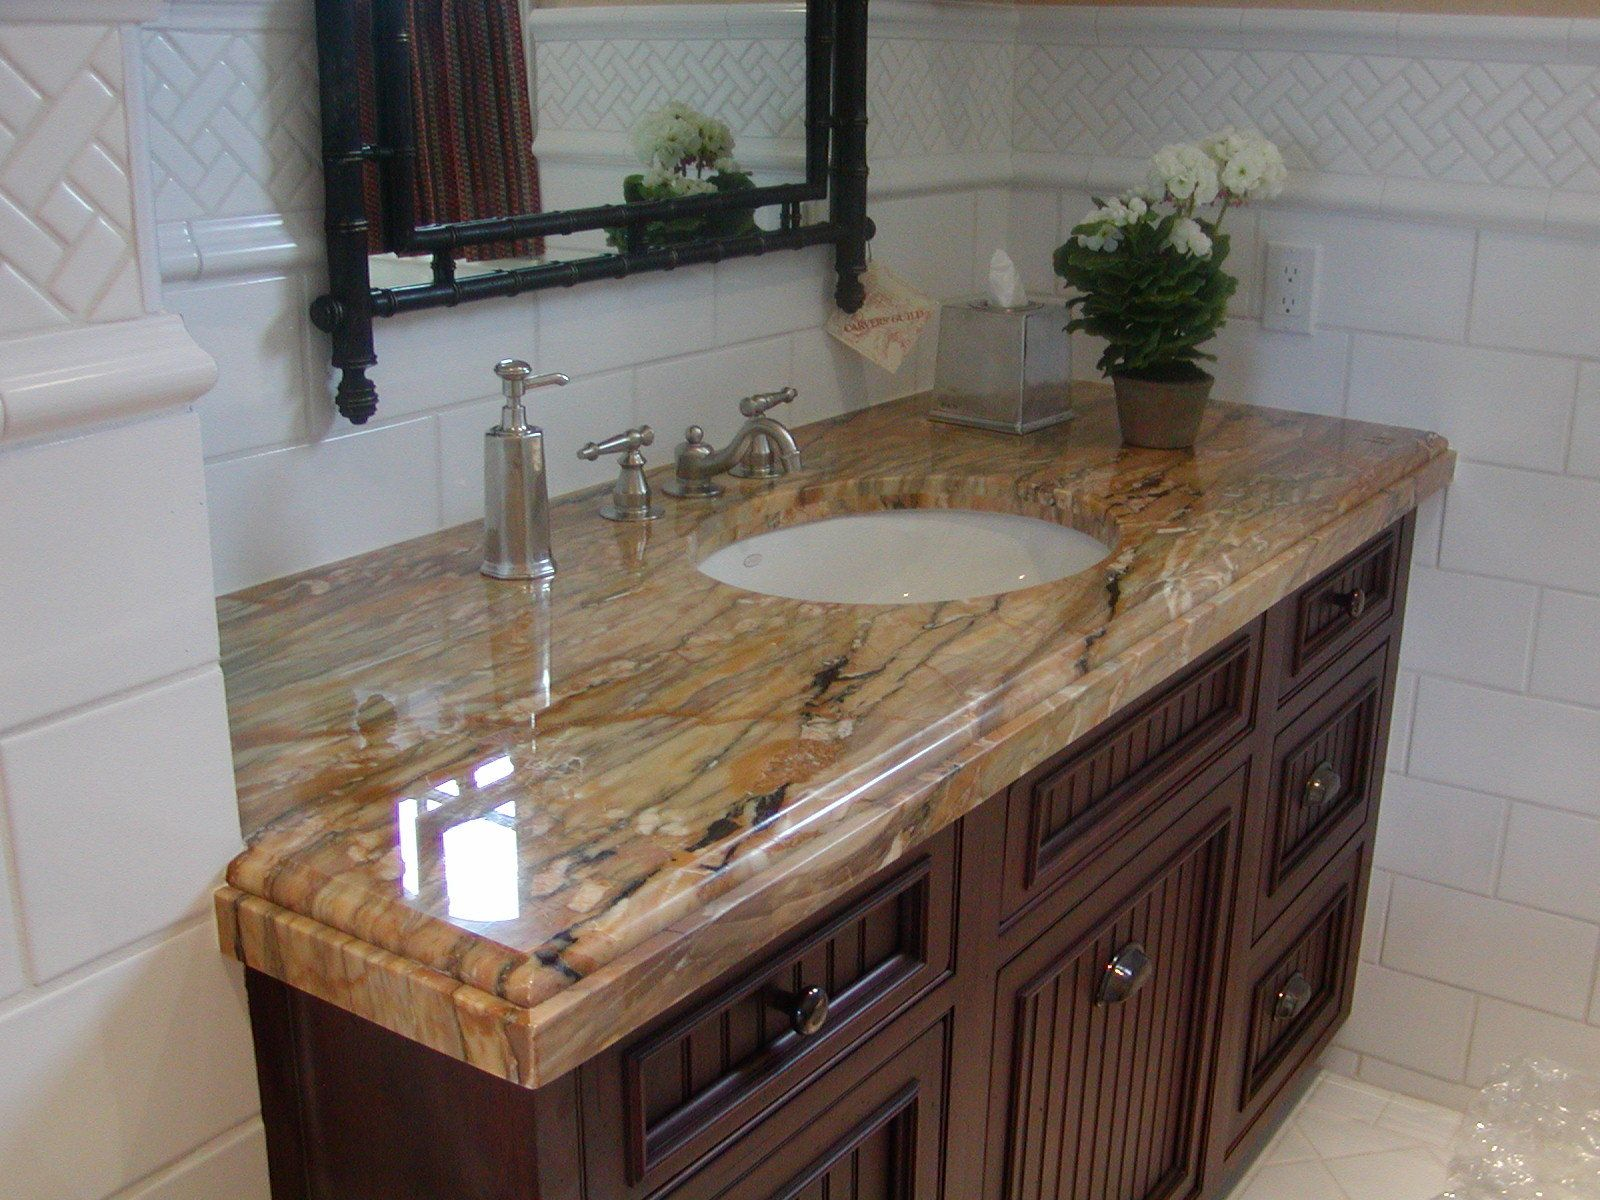 Brown / Tan /White Granite Vanity With Oval Undermount Sink And Dark  Colored Cabinets |